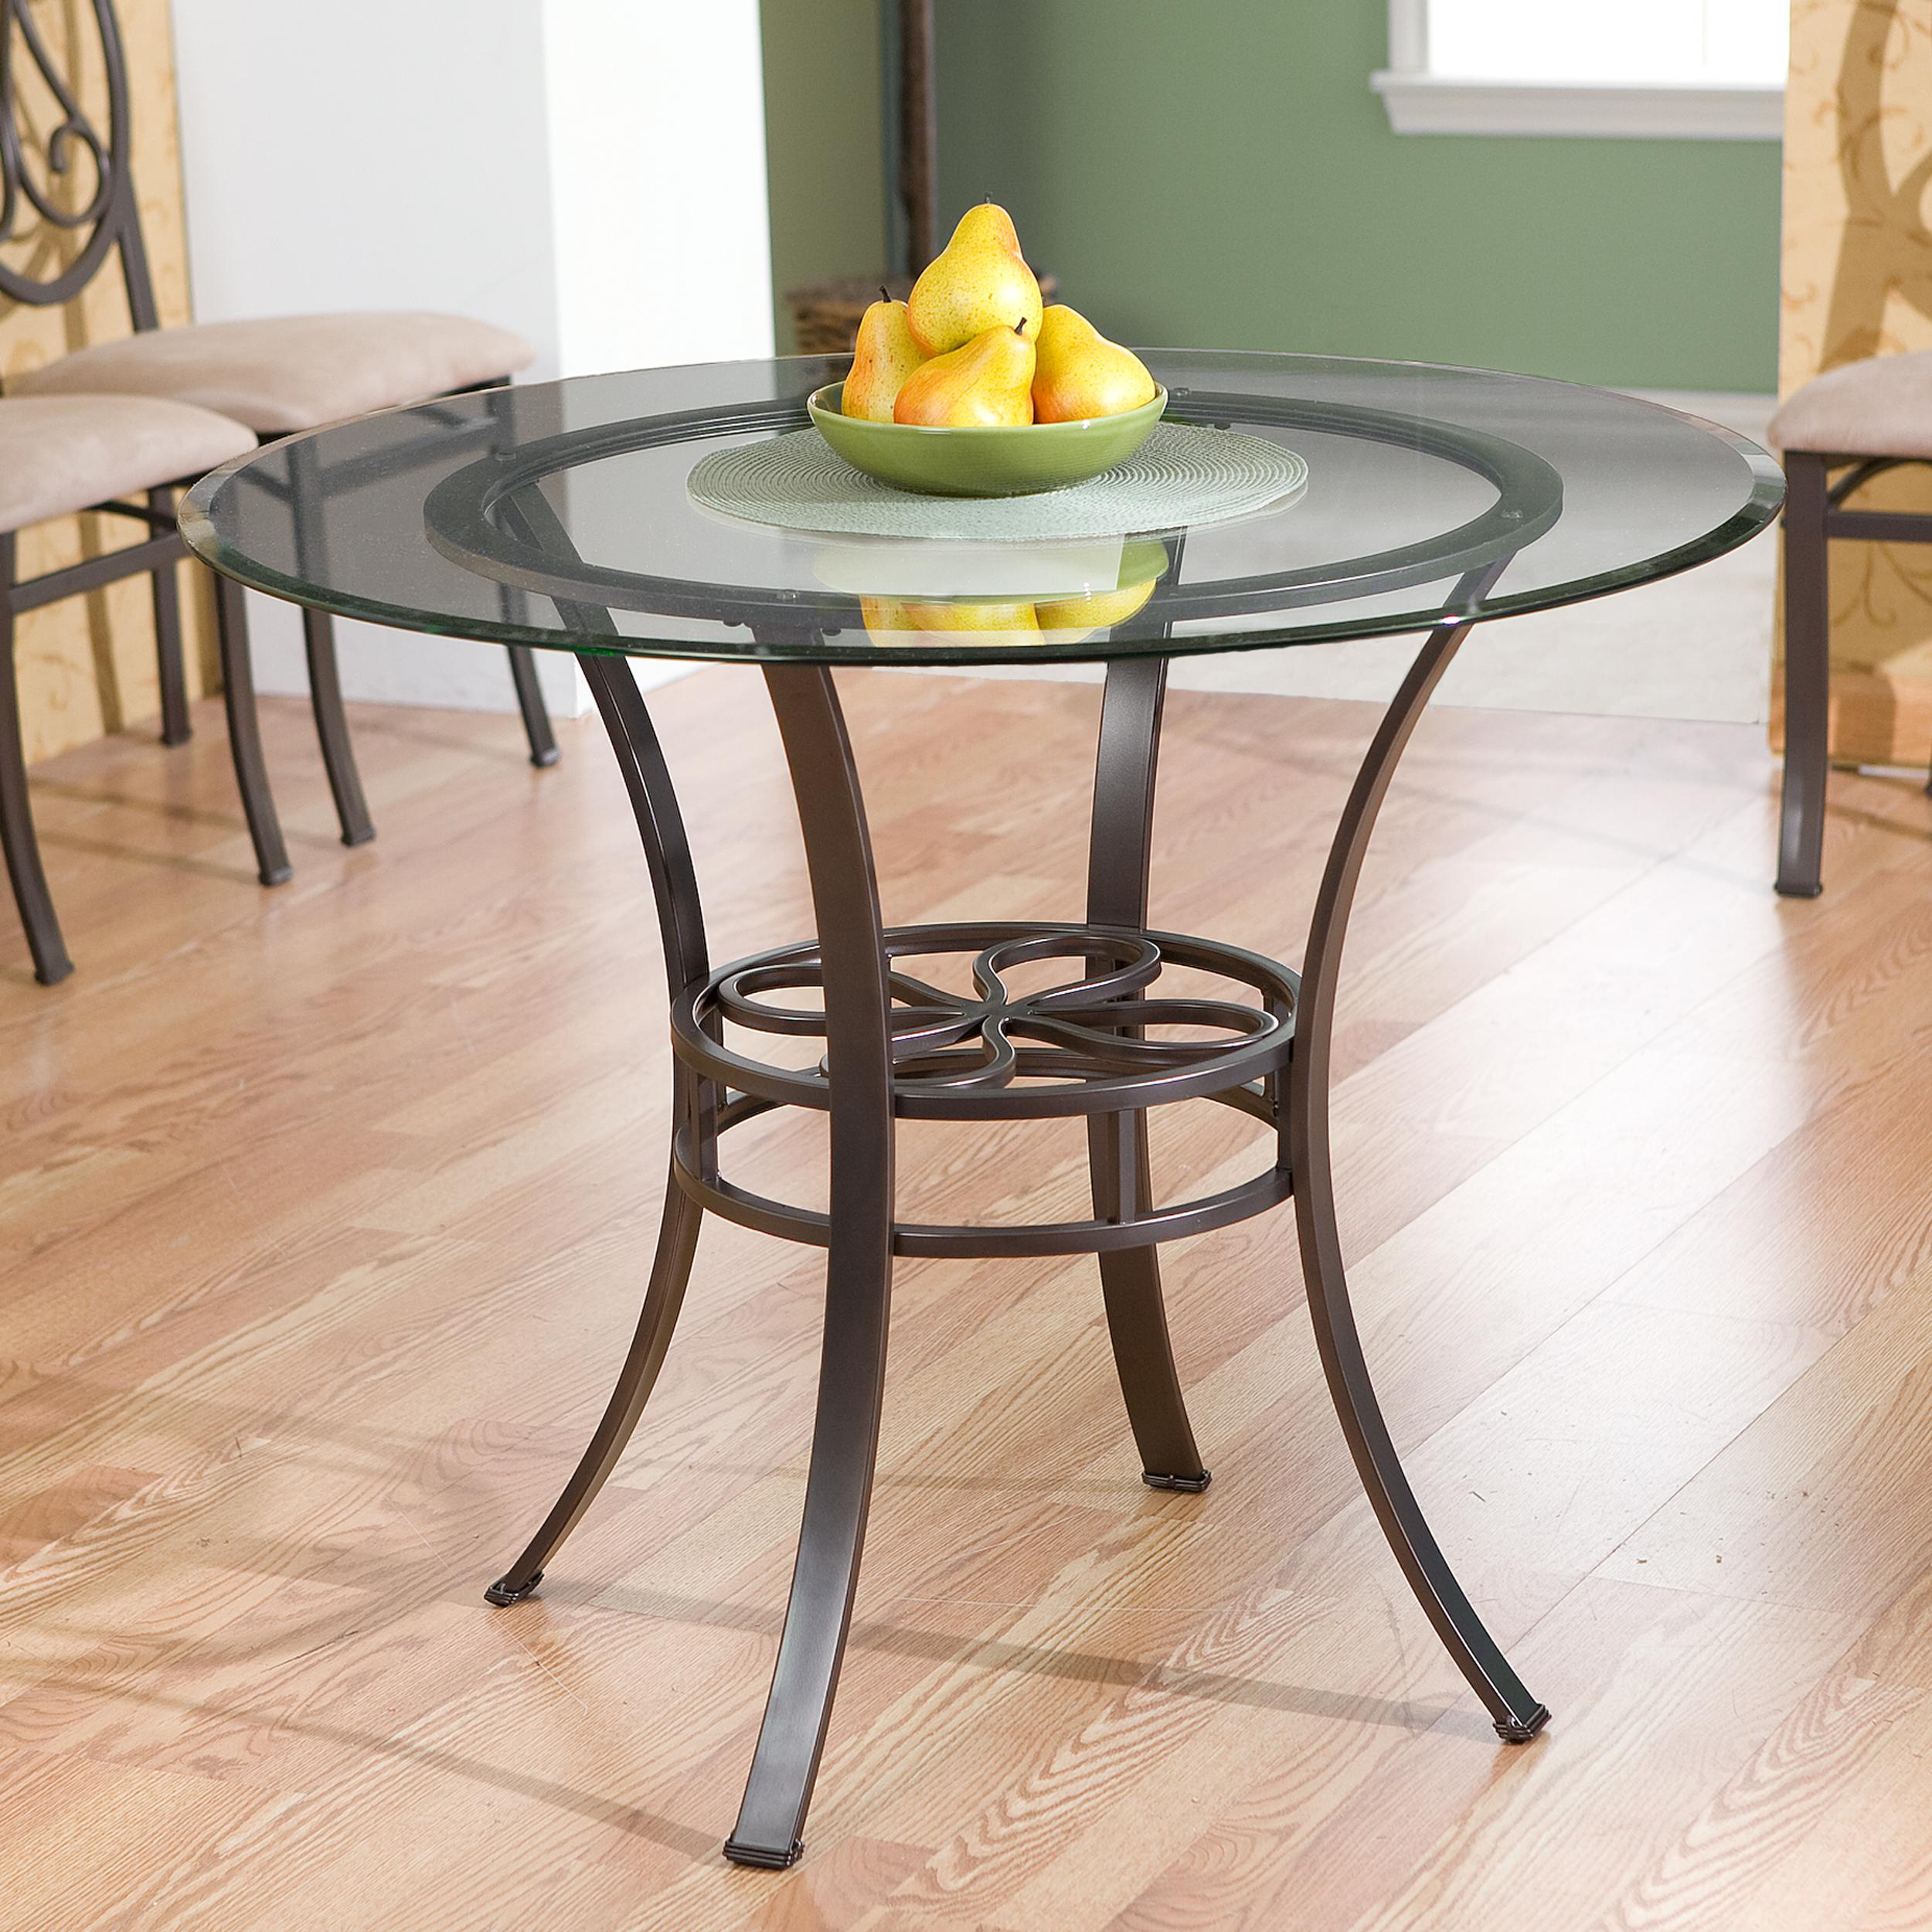 Southern enterprises lucianna glass top dining table dark brown finish tables Glass furniture tops